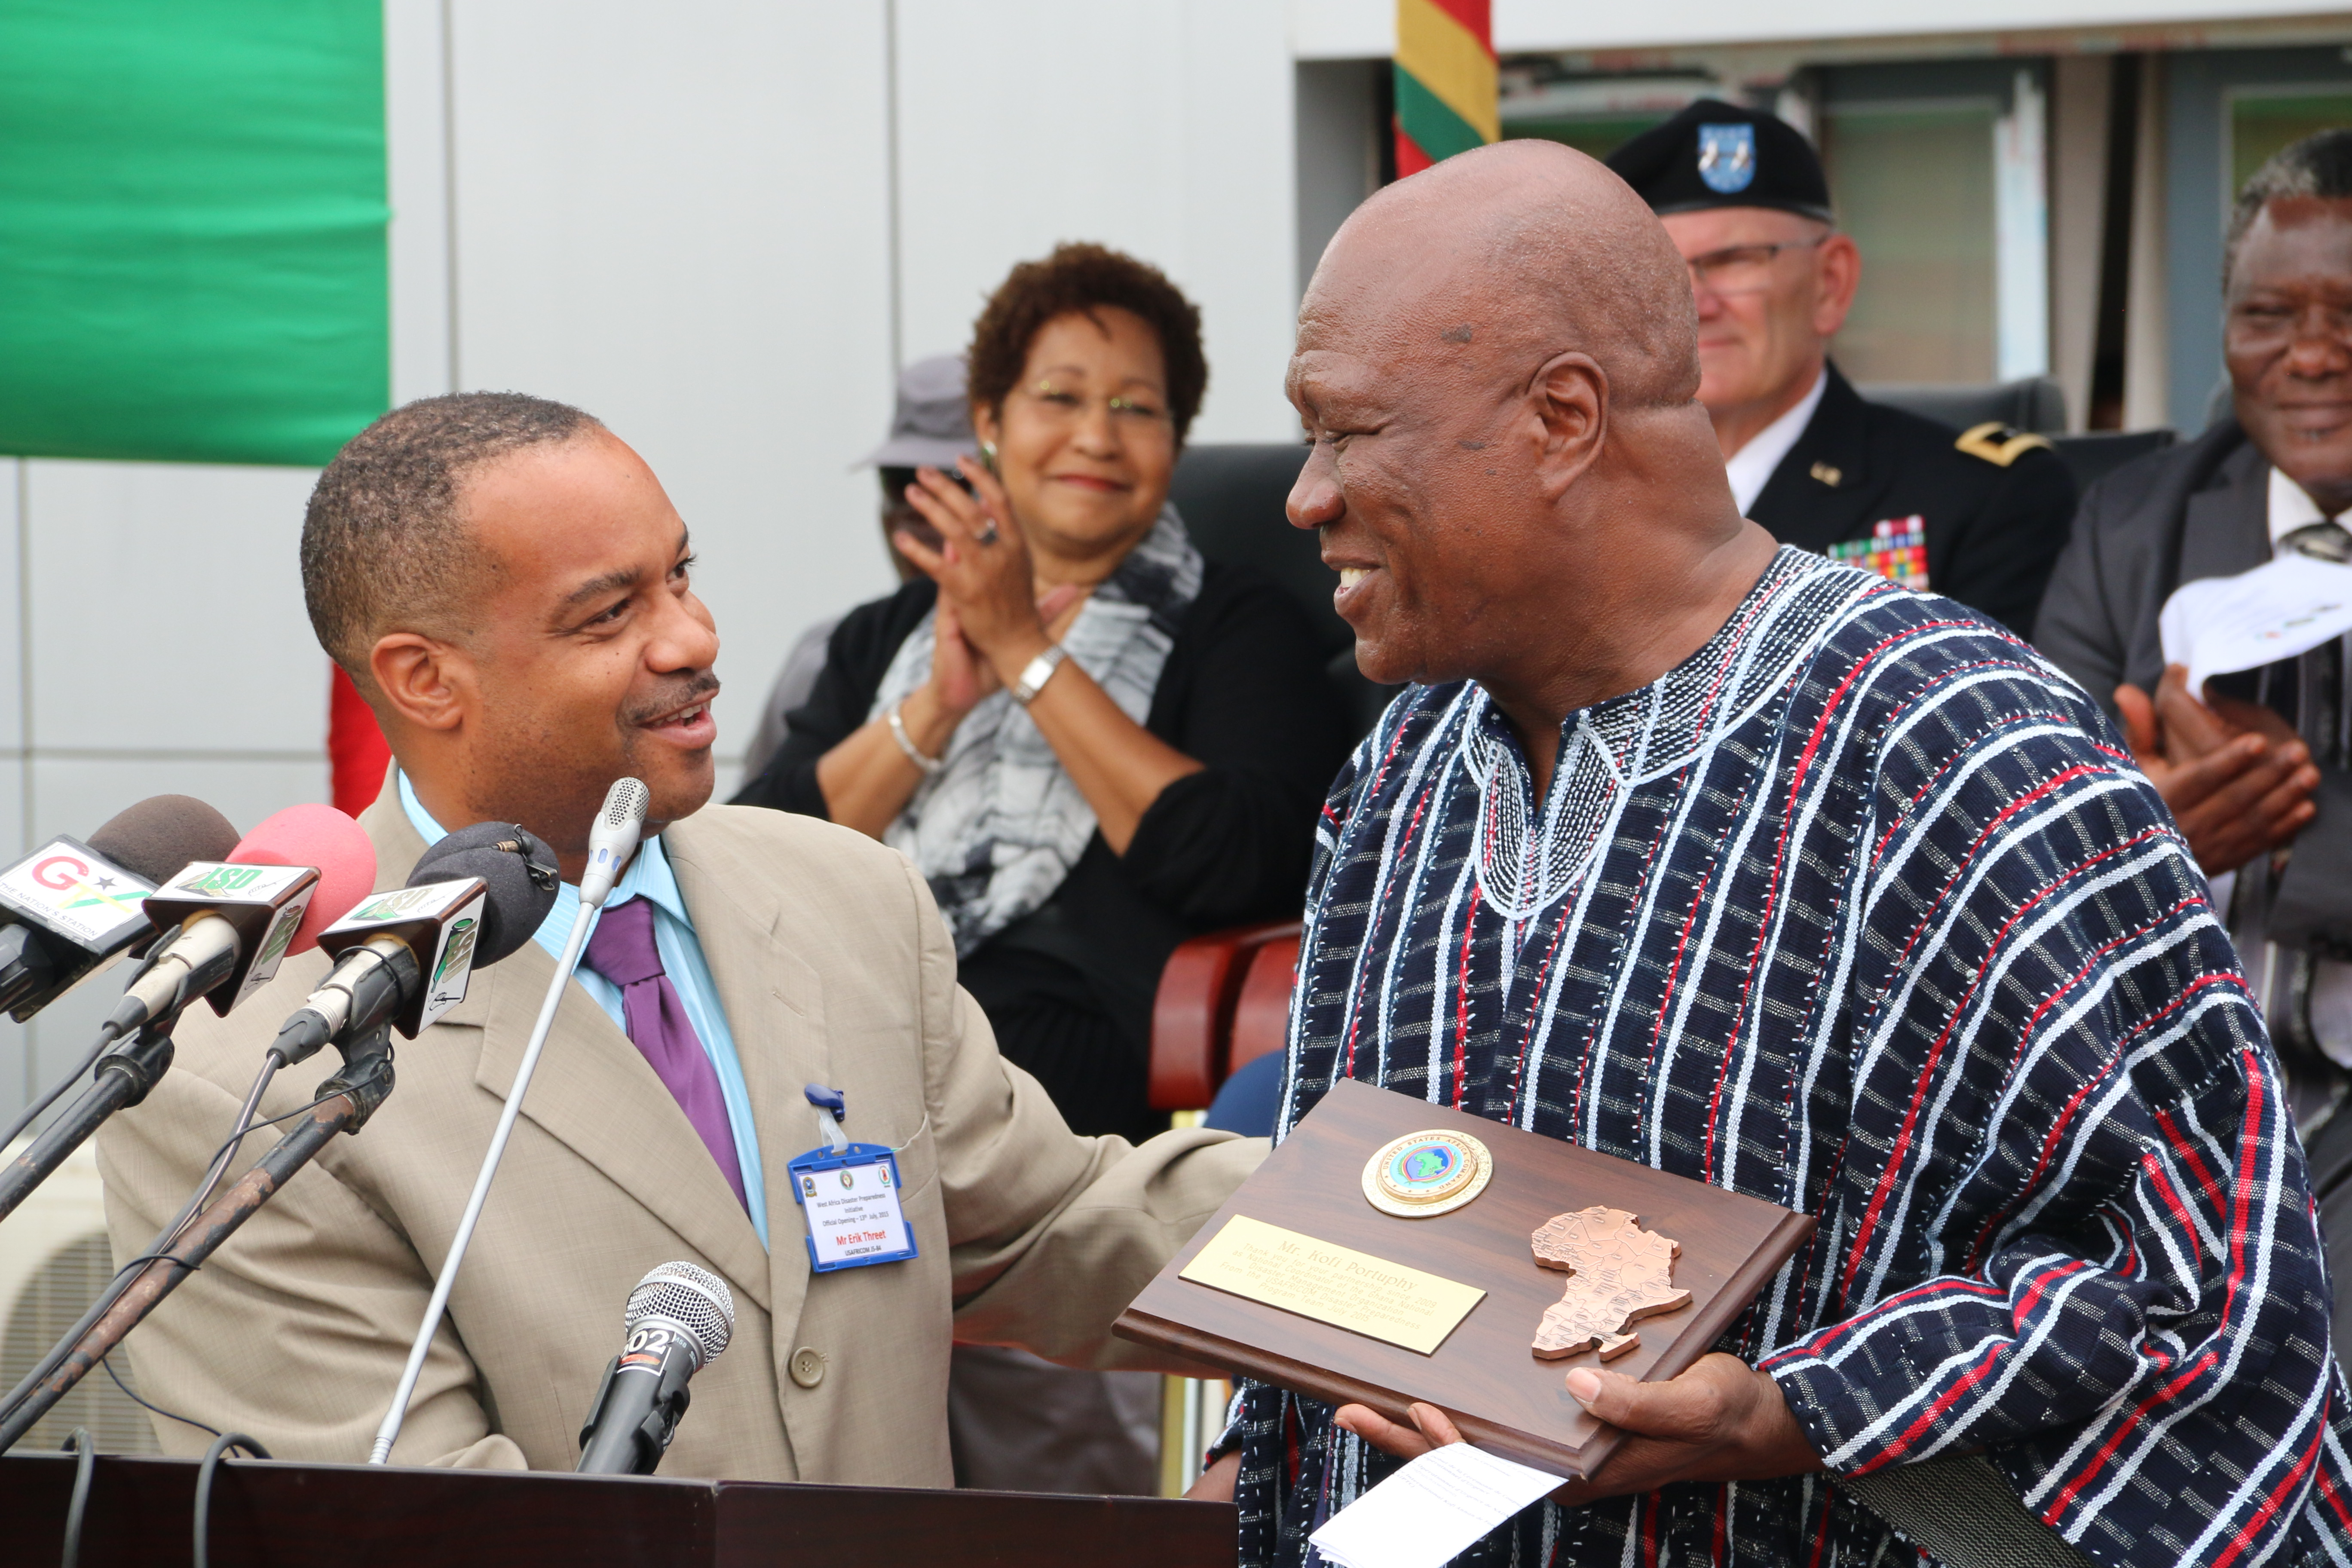 Erik Threet, left, disaster preparedness program manager with U.S. Africa Command, presents an award for service to Sir Ebeneezer Kofi Portuphy, former national coordinator for Ghana's National Disaster Management Organization, in Accra, Ghana July 13, 2015.